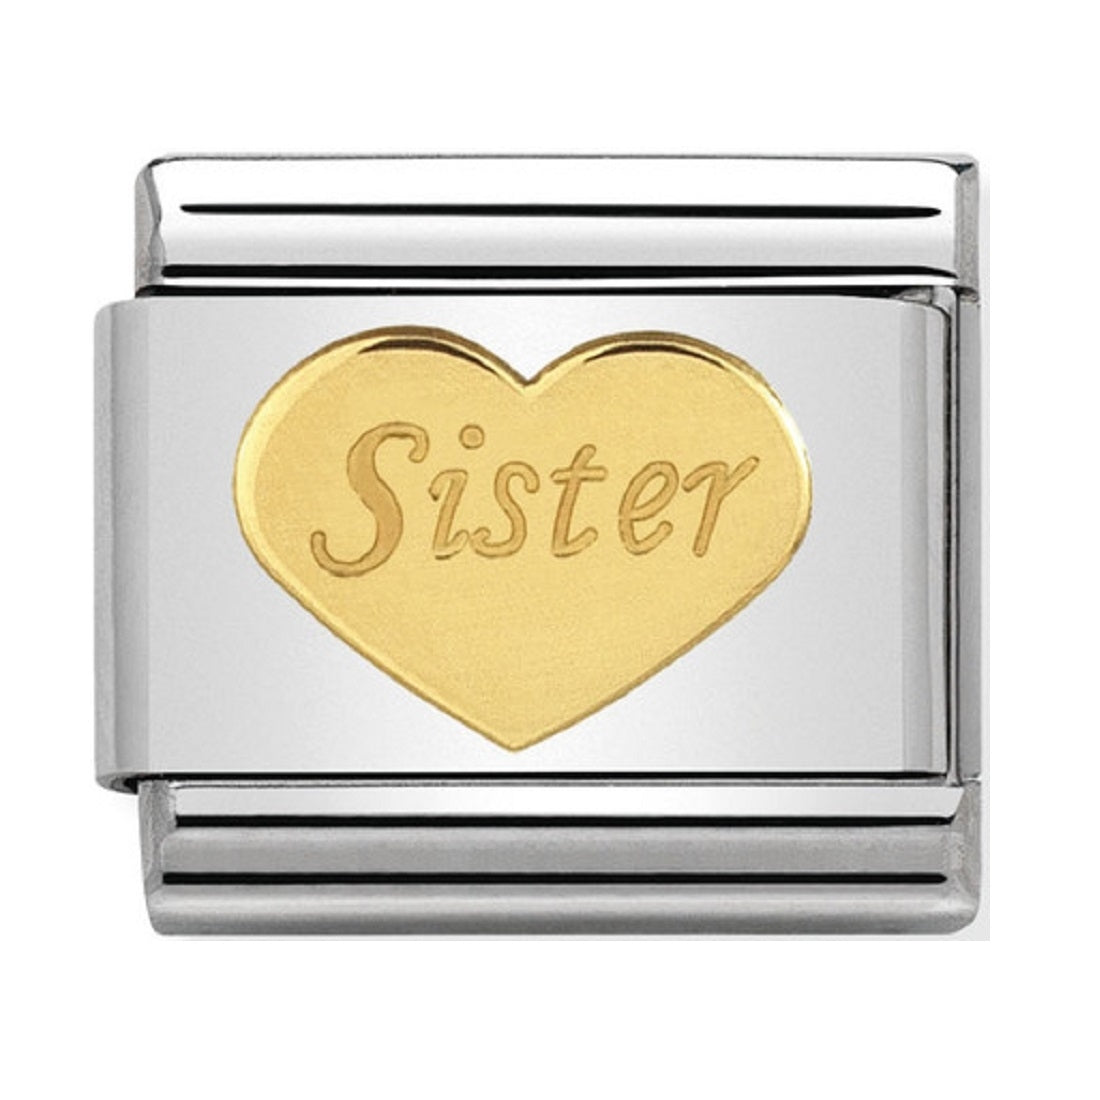 Nomination Link 18ct Gold Sister Heart – The Secret Garden bfbe6b7b7d66